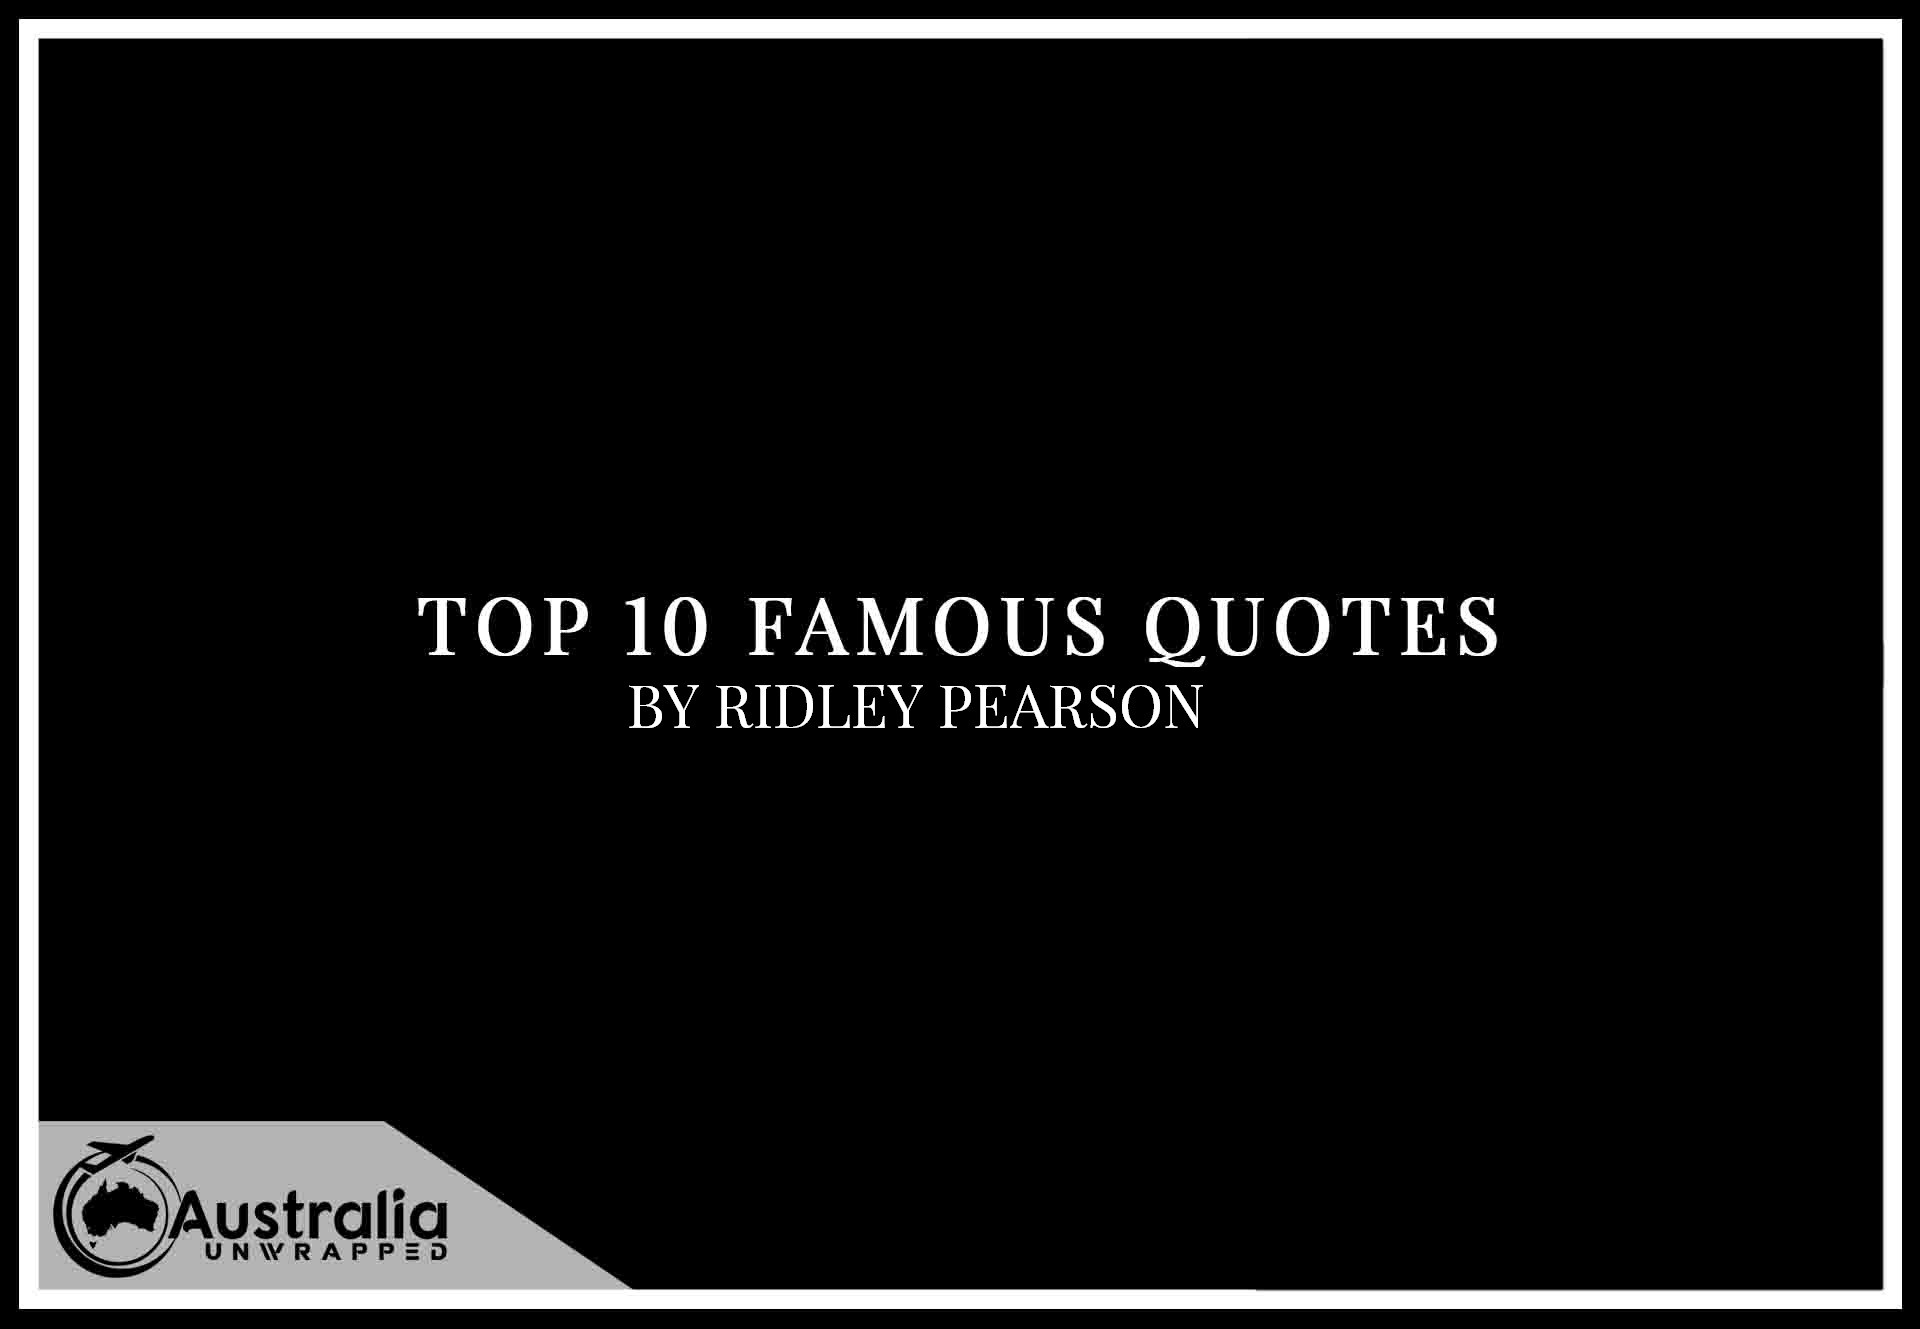 Top 10 Famous Quotes by Author Ridley Pearson